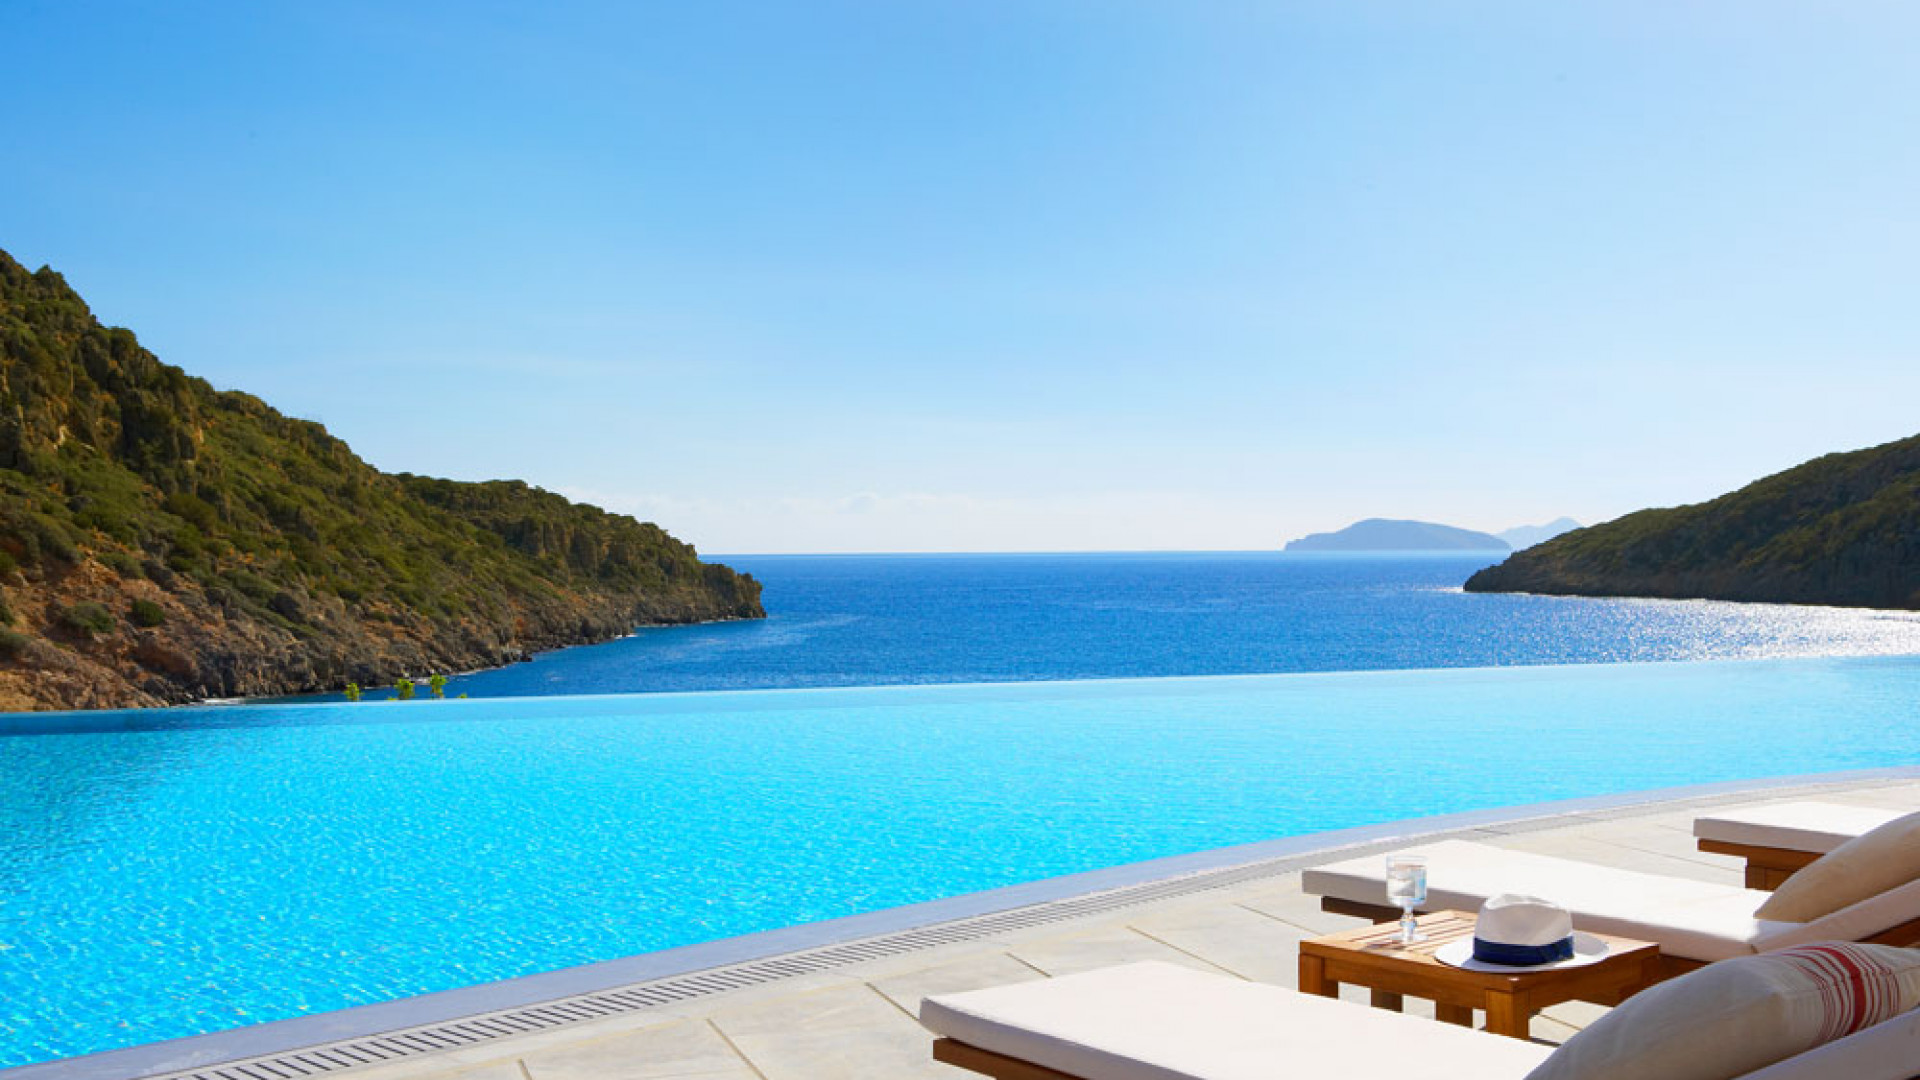 Infinity Edge Pool at Daios Cove